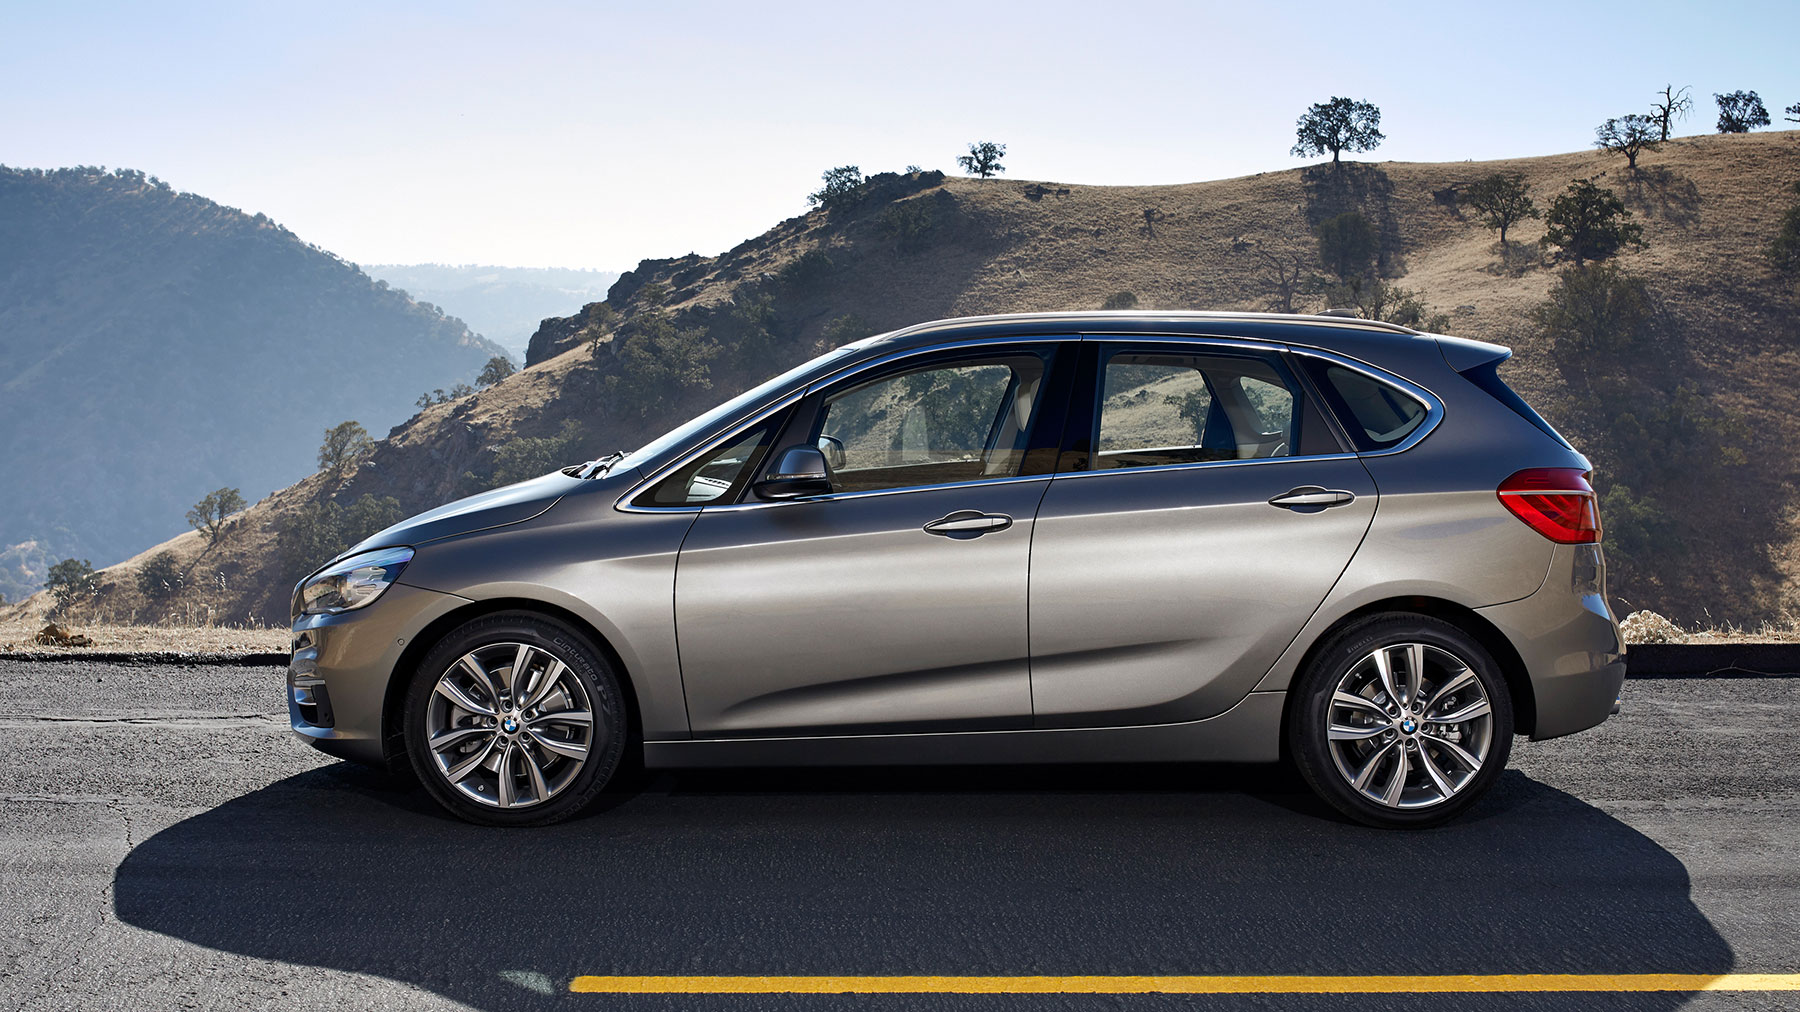 BMW 2 series Active Tourer 218i 2014 photo - 2